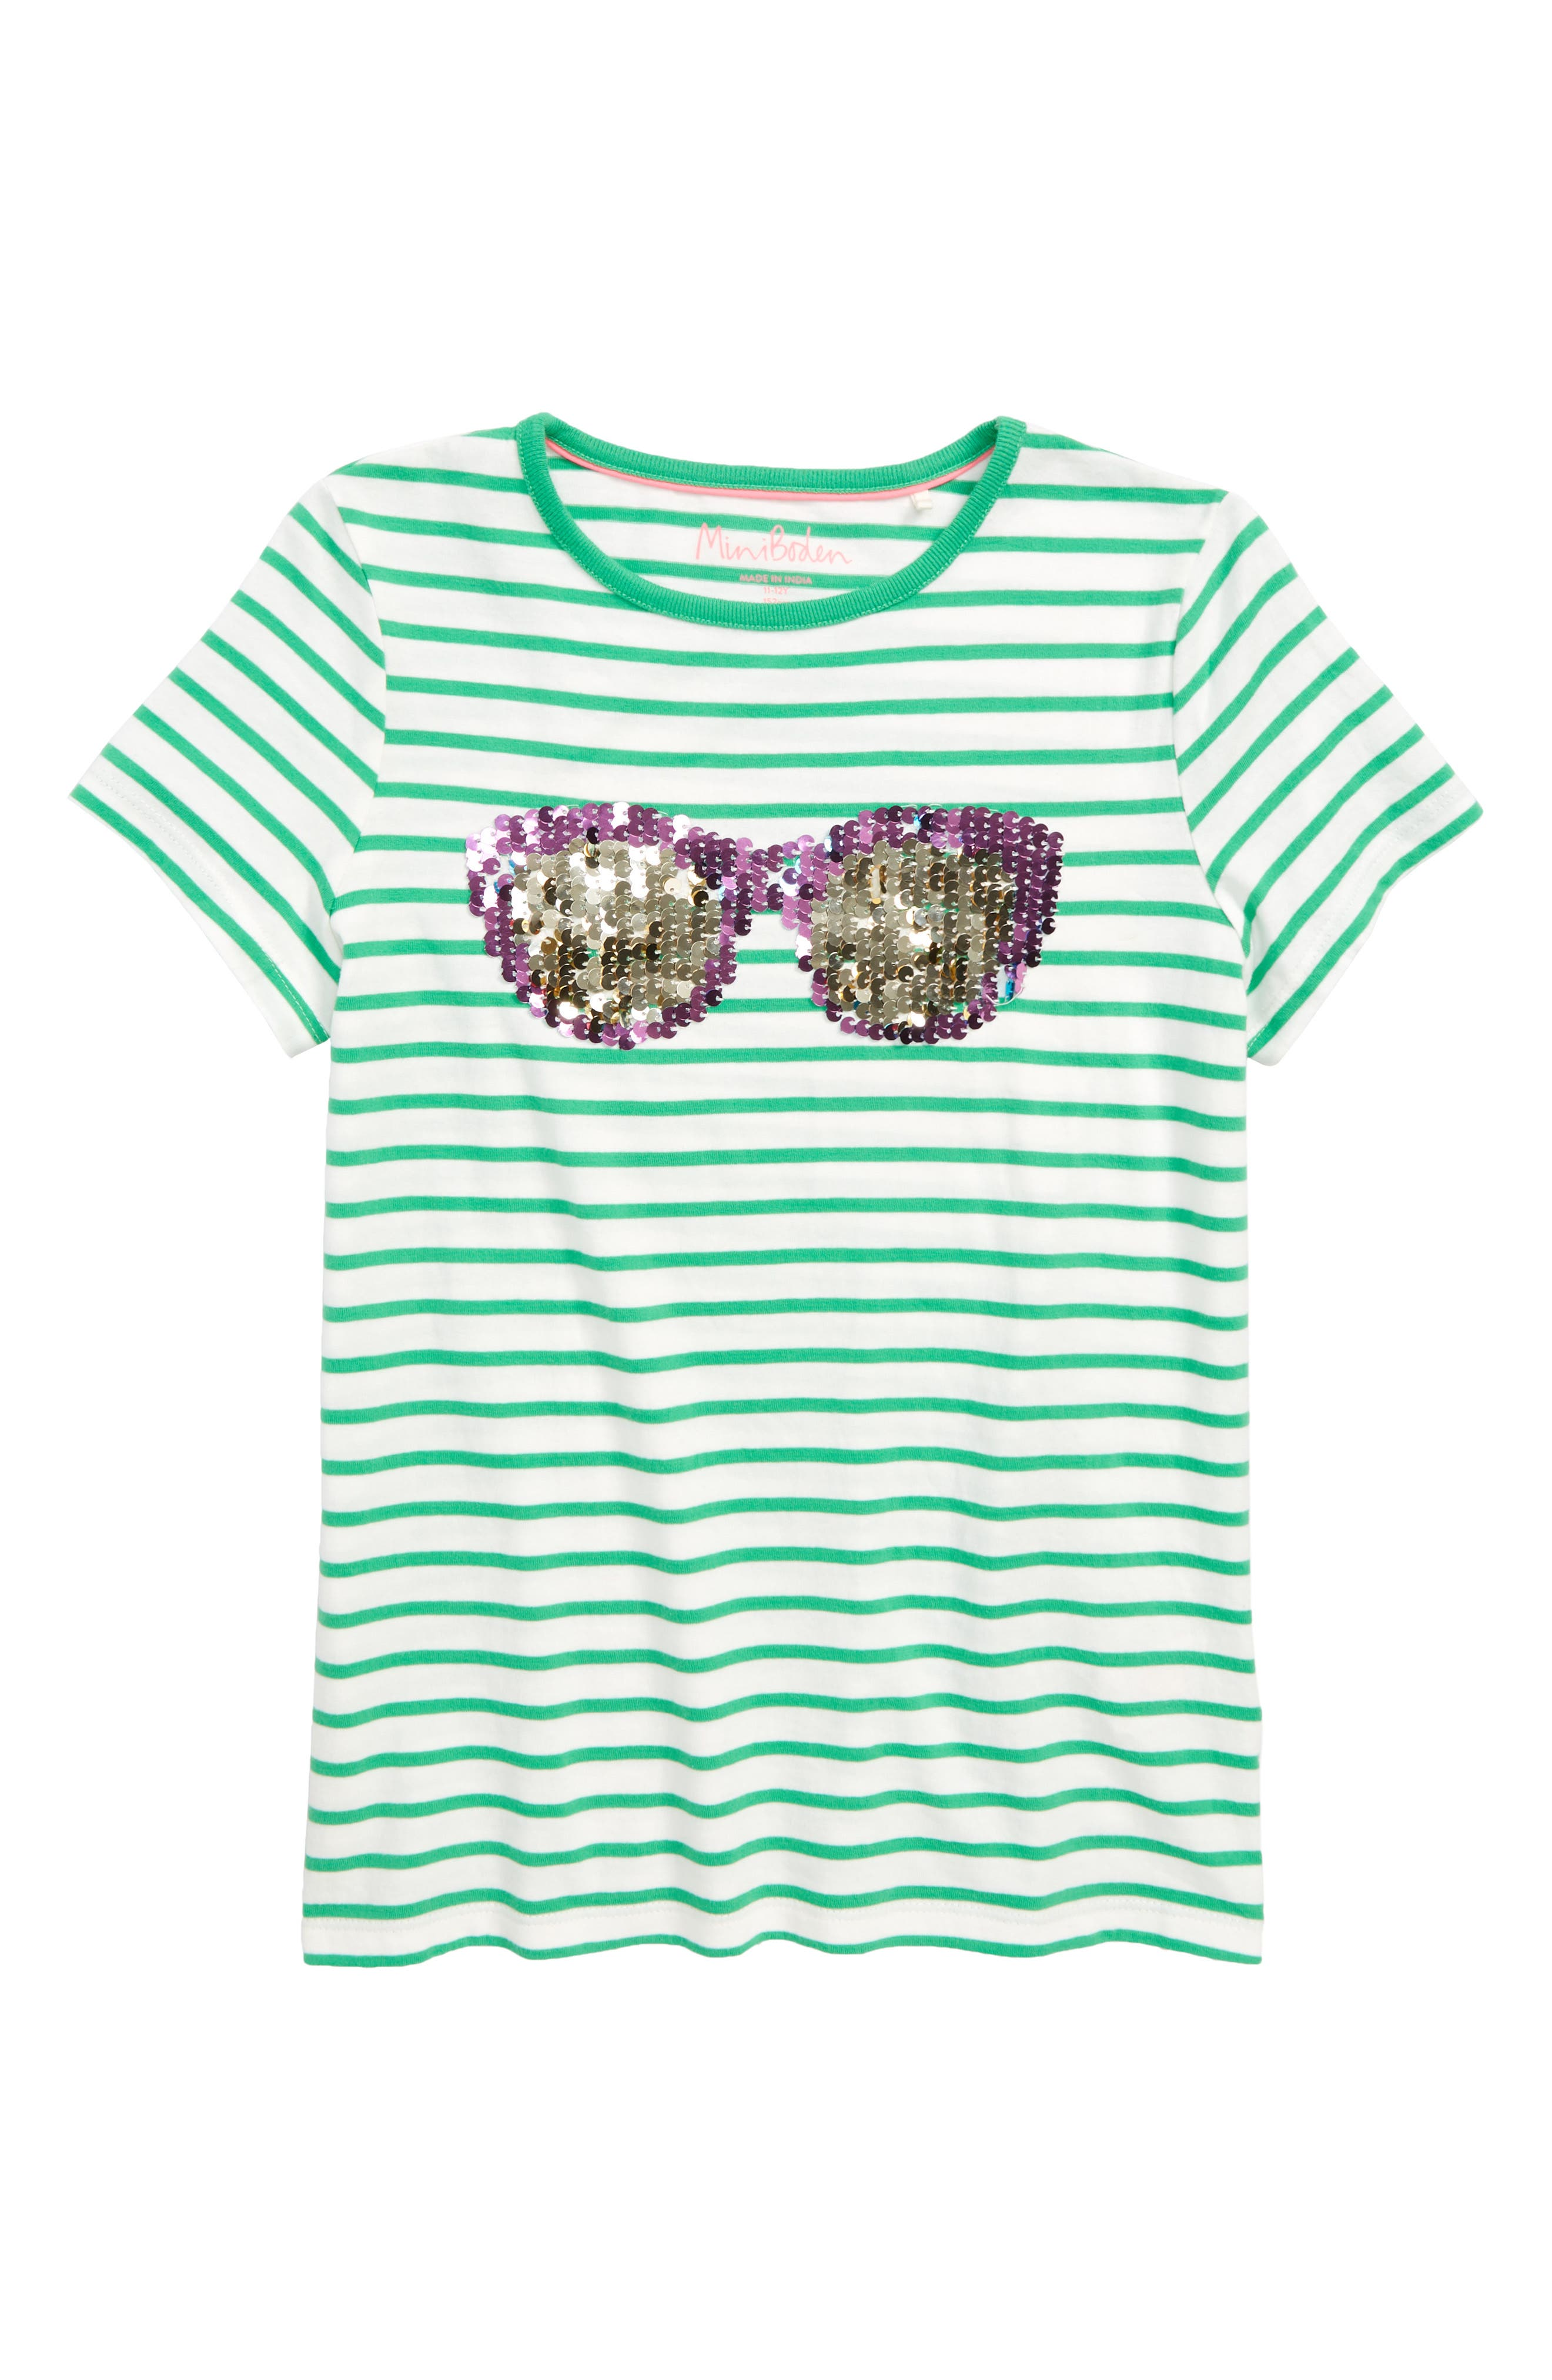 Sunny Sequin Tee,                             Alternate thumbnail 2, color,                             Grnivory/ Peppermint Green